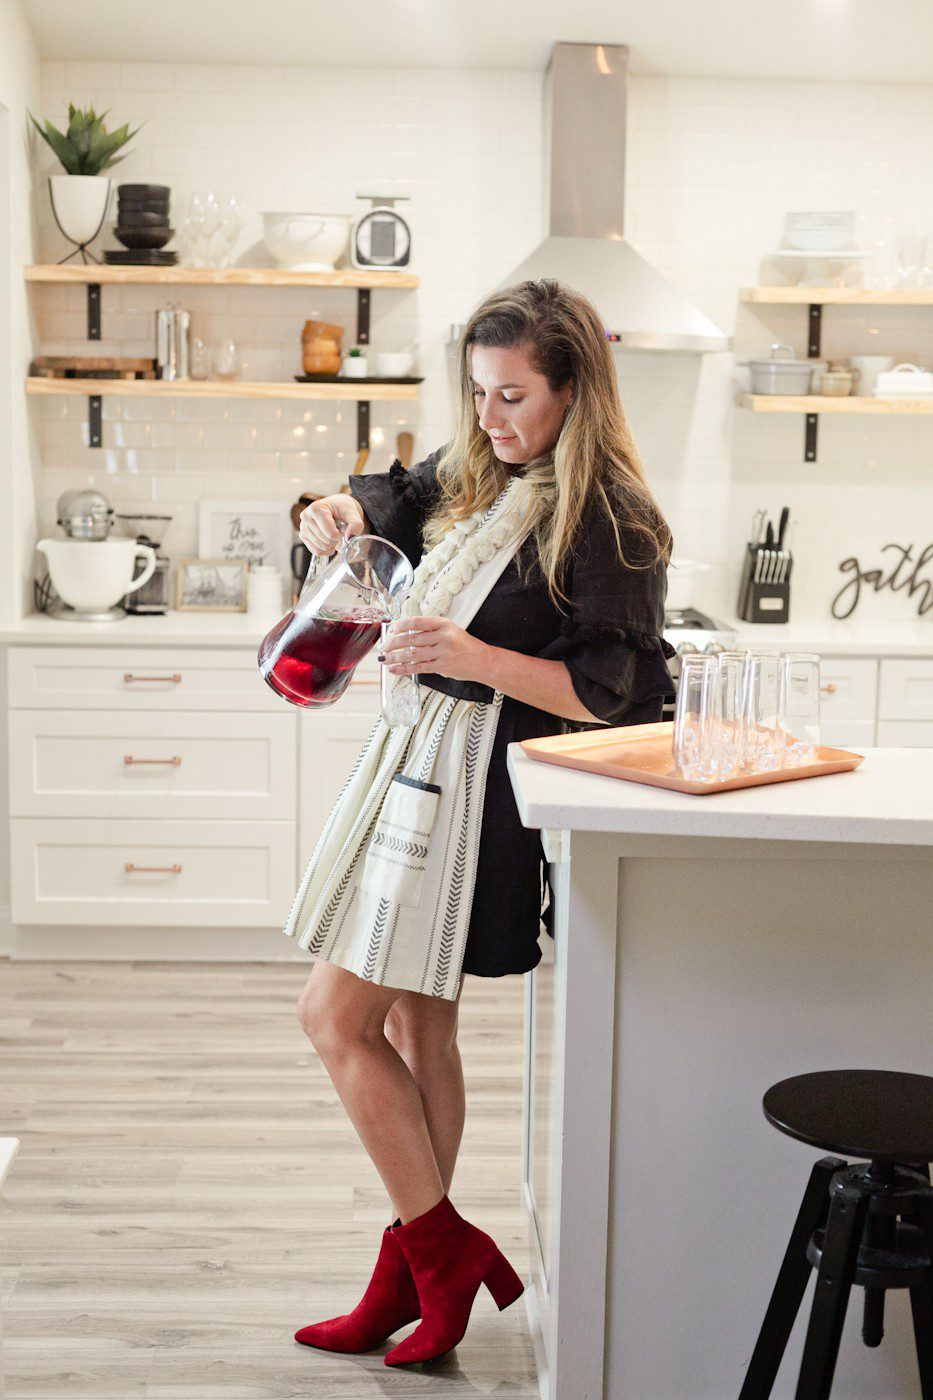 Reduce that awkward silence at your next party with these 5 Top Party Ice Breakers to Get your Holiday Party Going featured by top Florida lifestyle blogger, Tabitha Blue of Fresh Mommy Blog